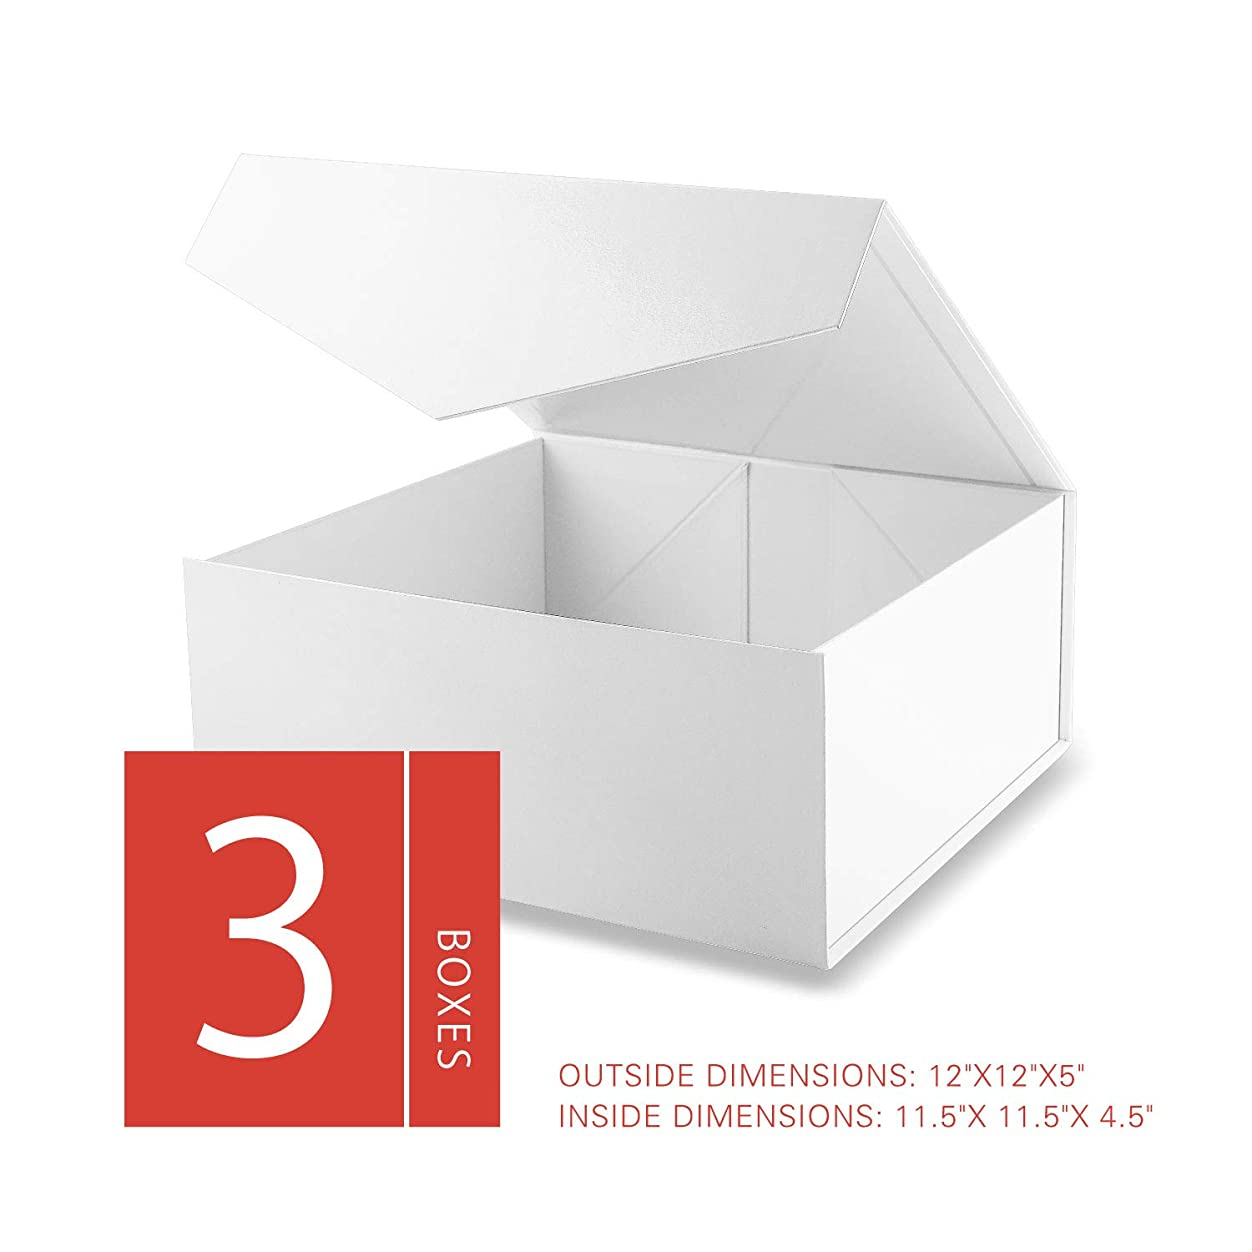 MALICPLUS Luxury Large Gift Boxes with Lids, Square 12x12x5 Inches, Bridesmaids Proposal Boxes, Sturdy Boxes, Storage Boxes Collapsible Magnetic Closure Gift Boxes (Embossing Glossy White, 3 Boxes) uoks551138063